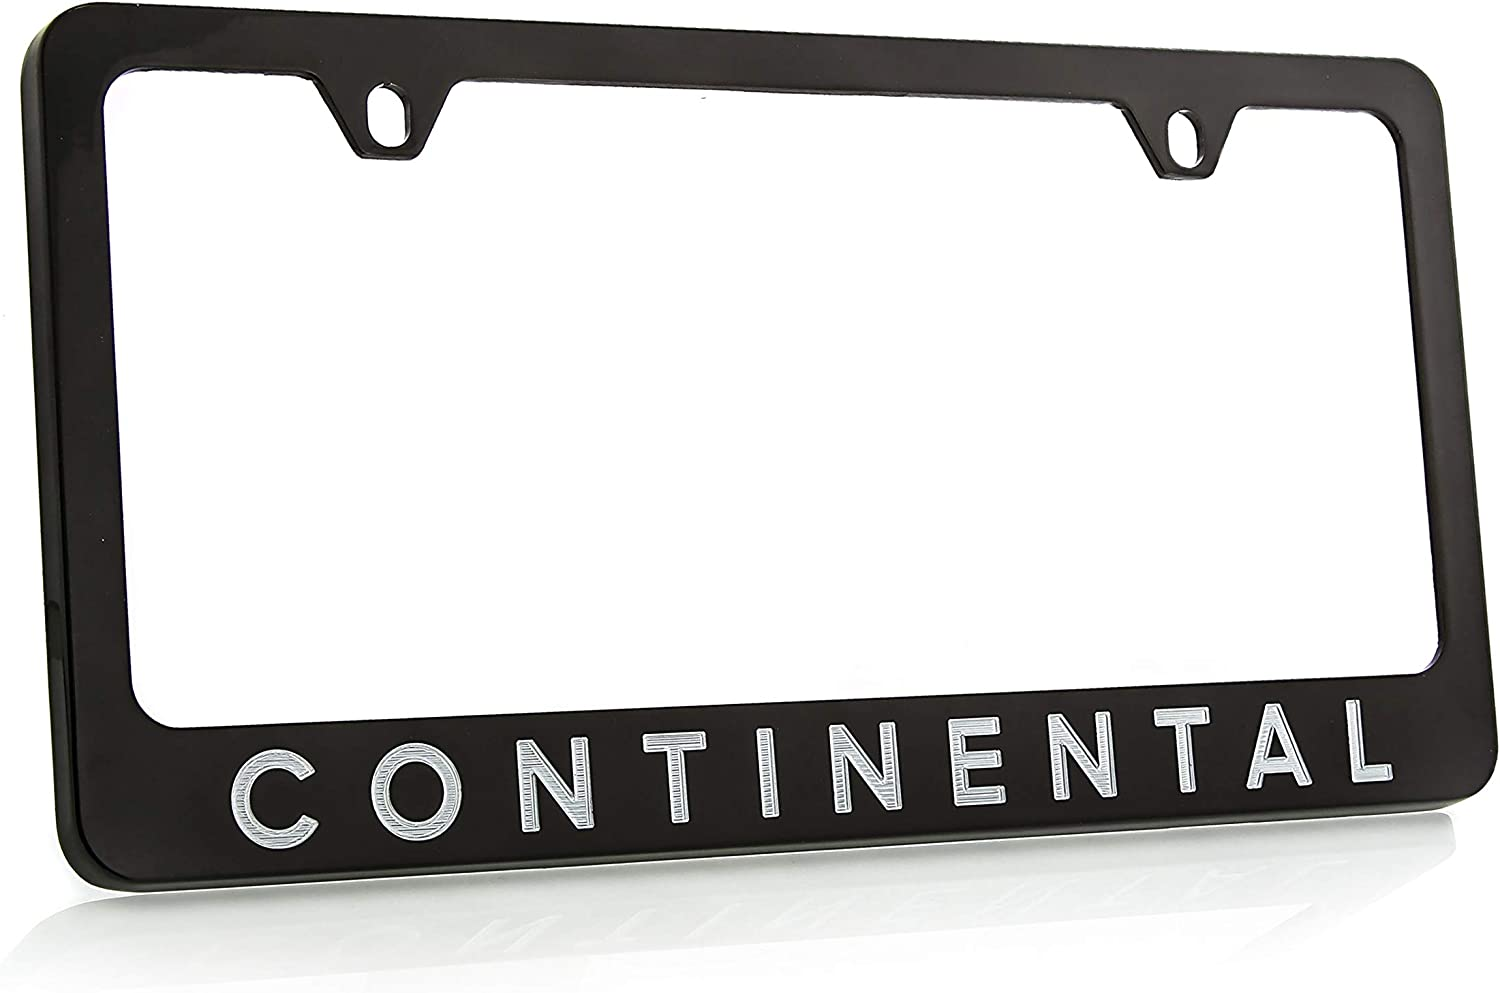 Ford F-150 Chrome Plated Brass Metal License Plate Frame Holder Wide Bottom Engraved 2 Hole Baronlfi